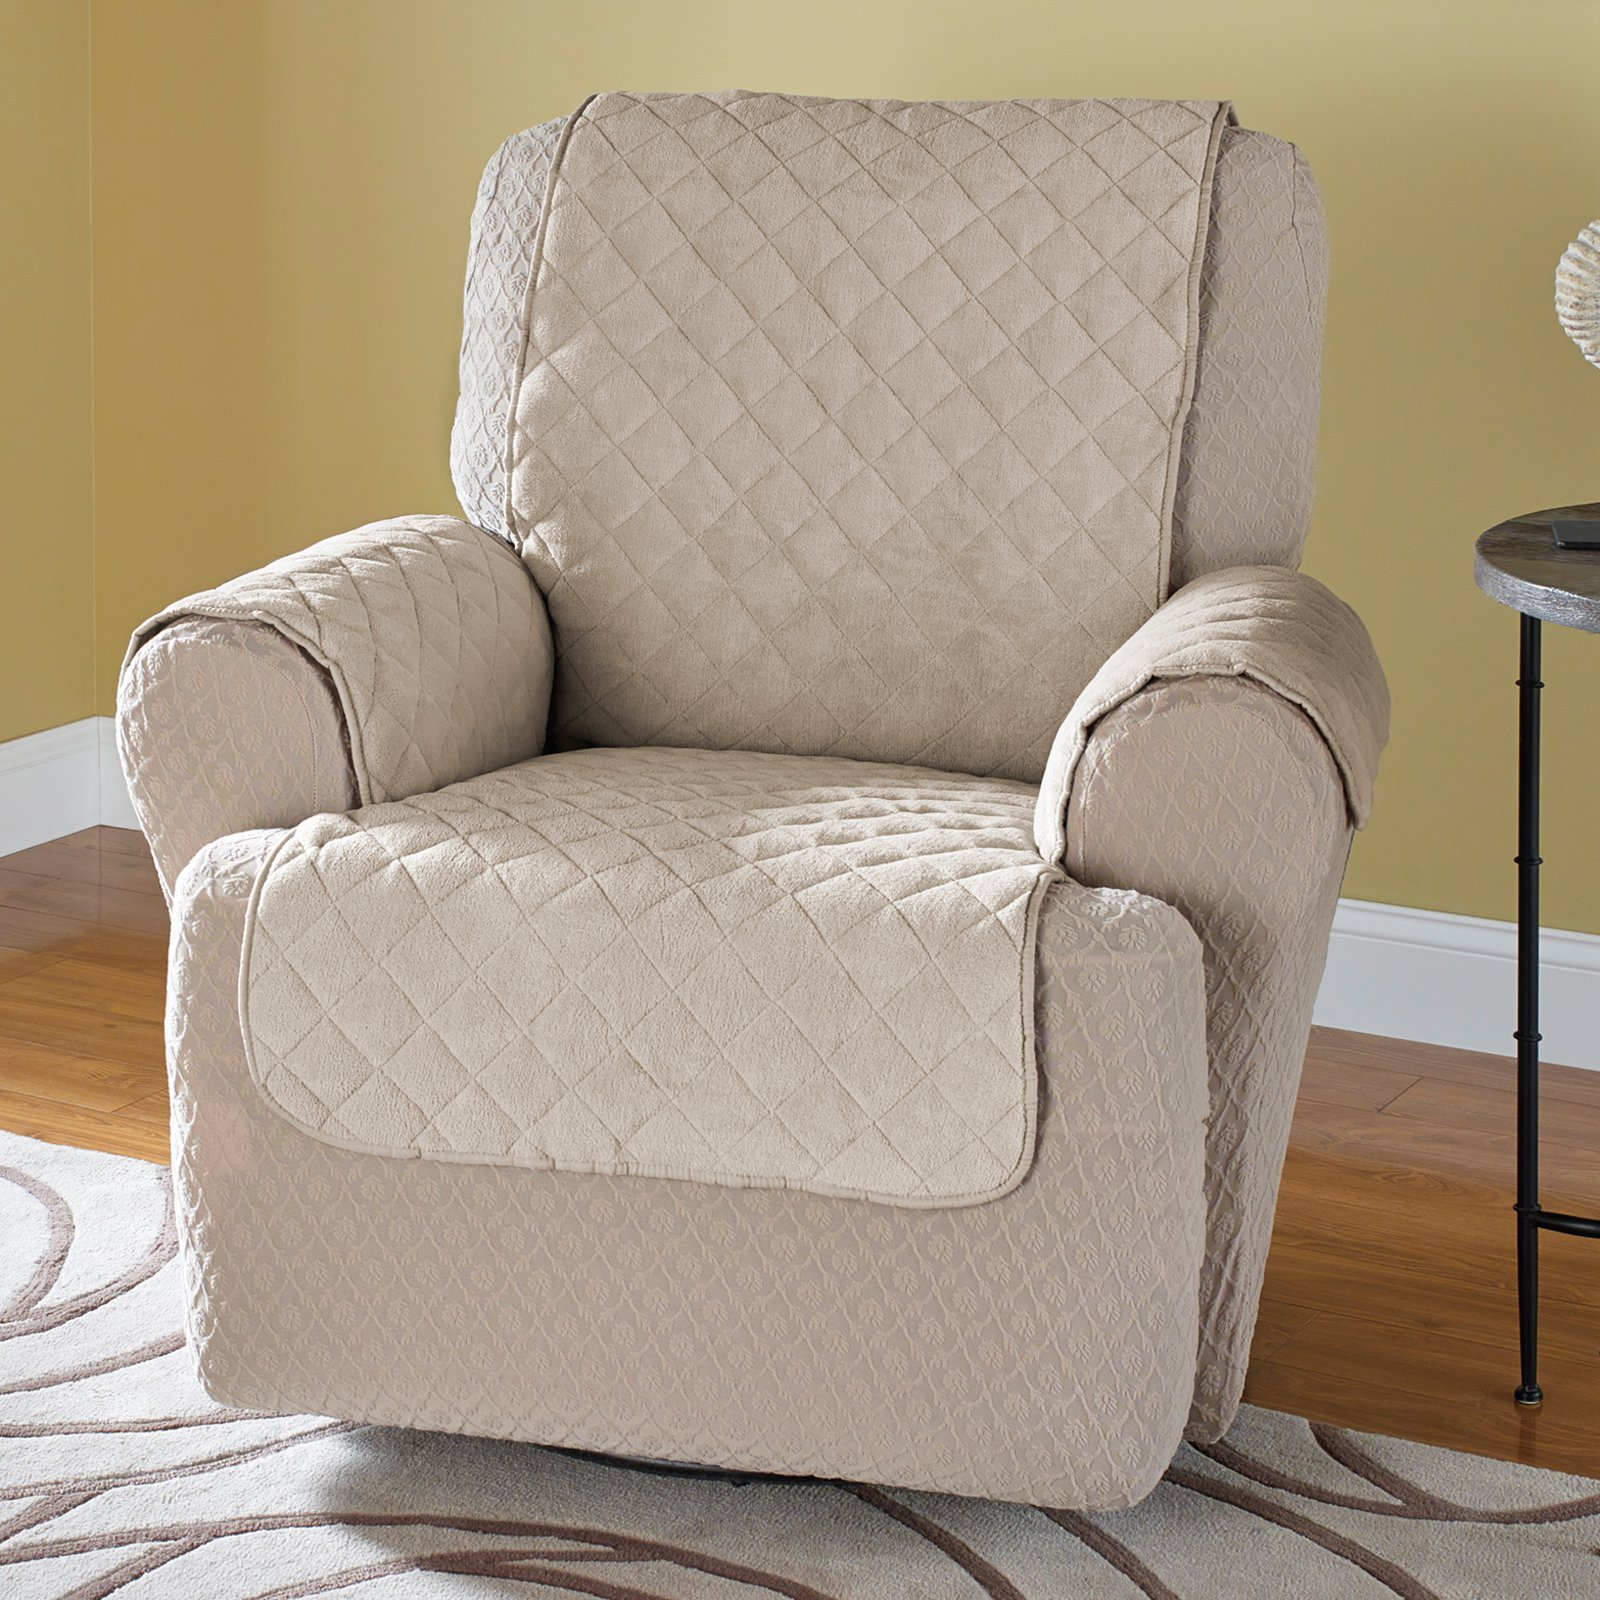 Couch Slipcovers | T Cushion Chair Slipcover | Oversized Chair Slipcover